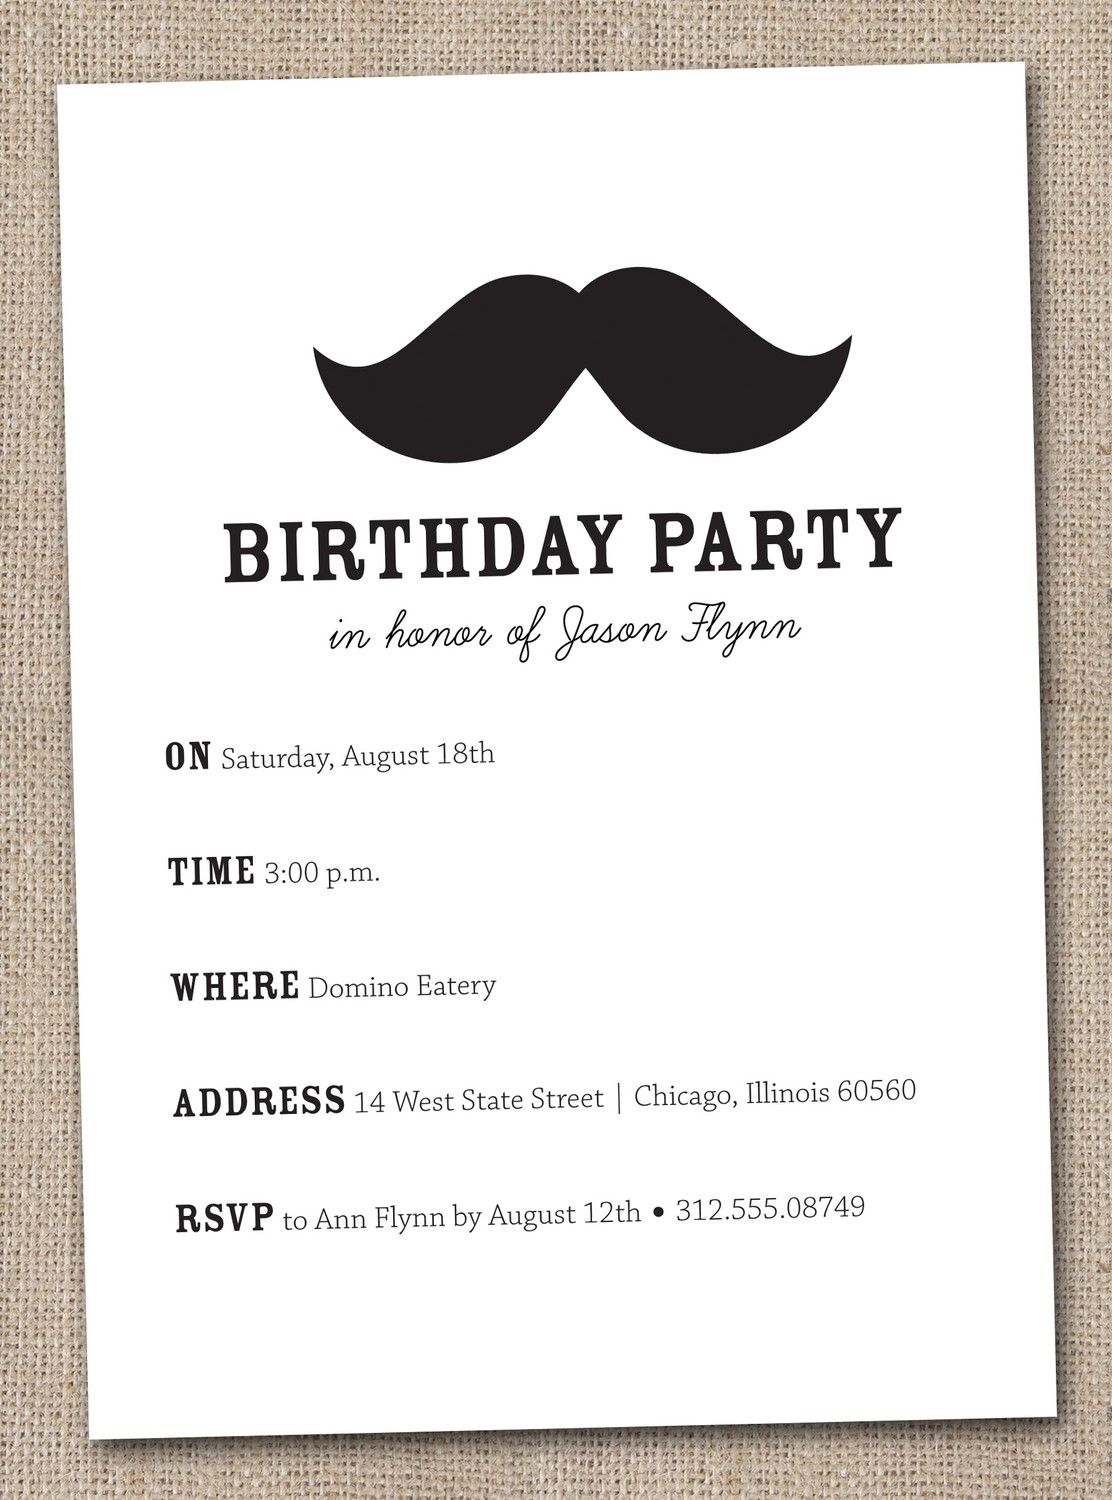 mustache bash birthday party invitations printable digital file mustache bash birthday party invitations printable digital file 16 00 via